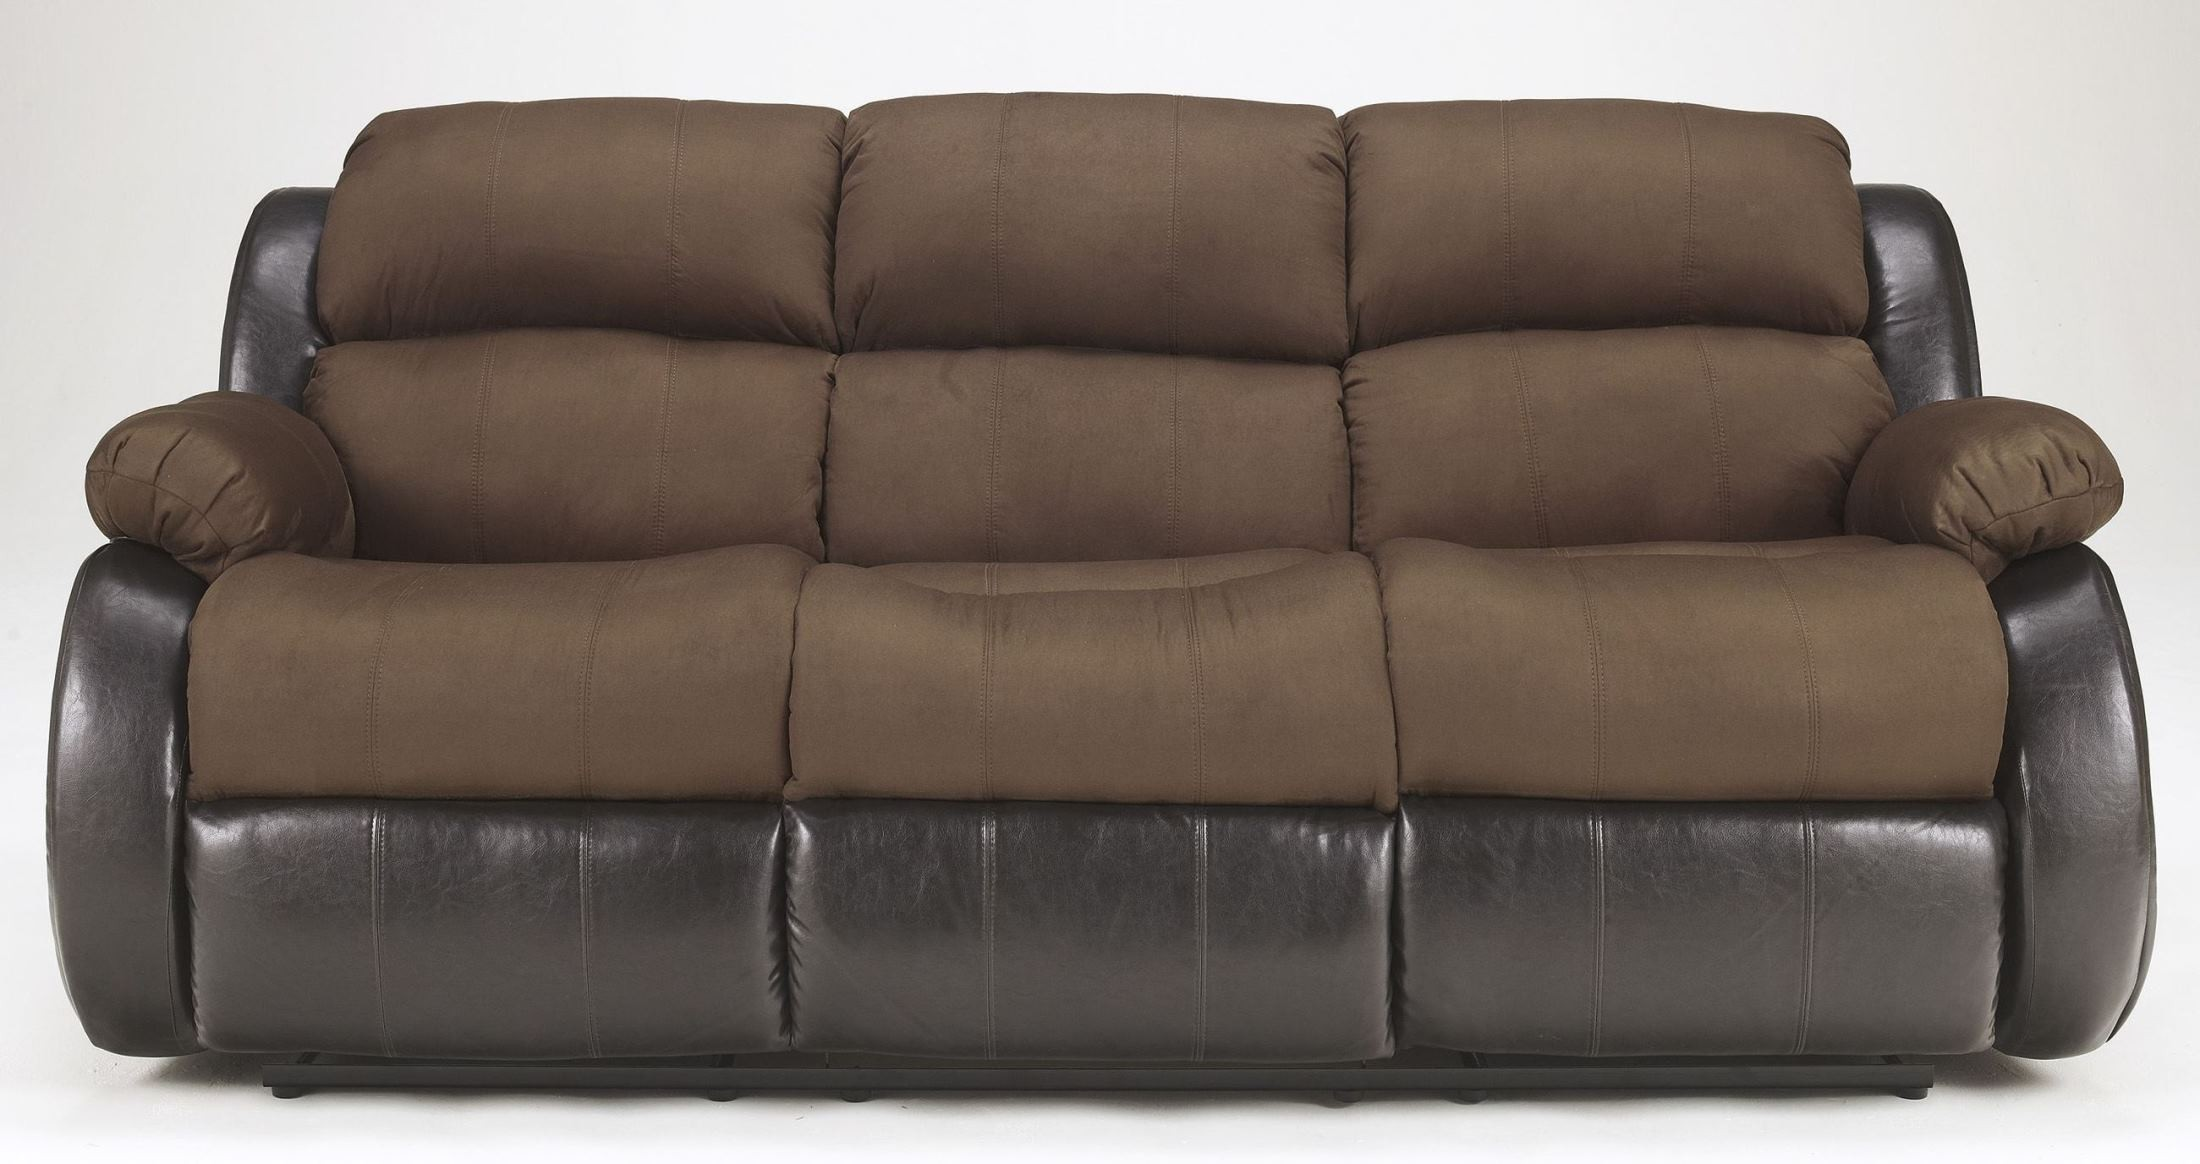 Presley Espresso Reclining Sofa w Massage ashley  : 31500 88 a sd5 from colemanfurniture.com size 2200 x 1164 jpeg 293kB